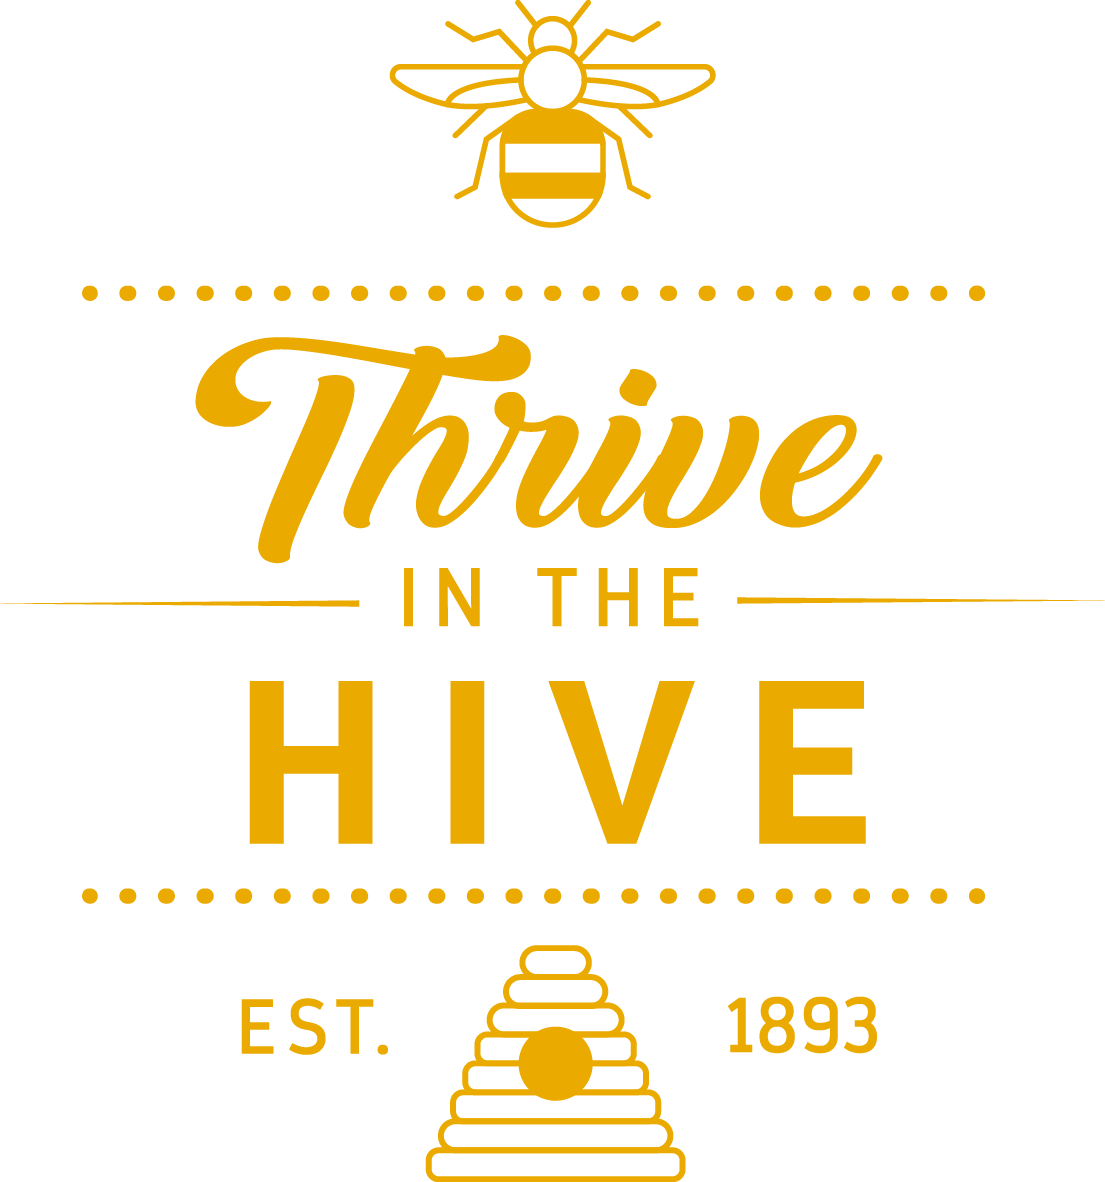 Thrive in the Hive